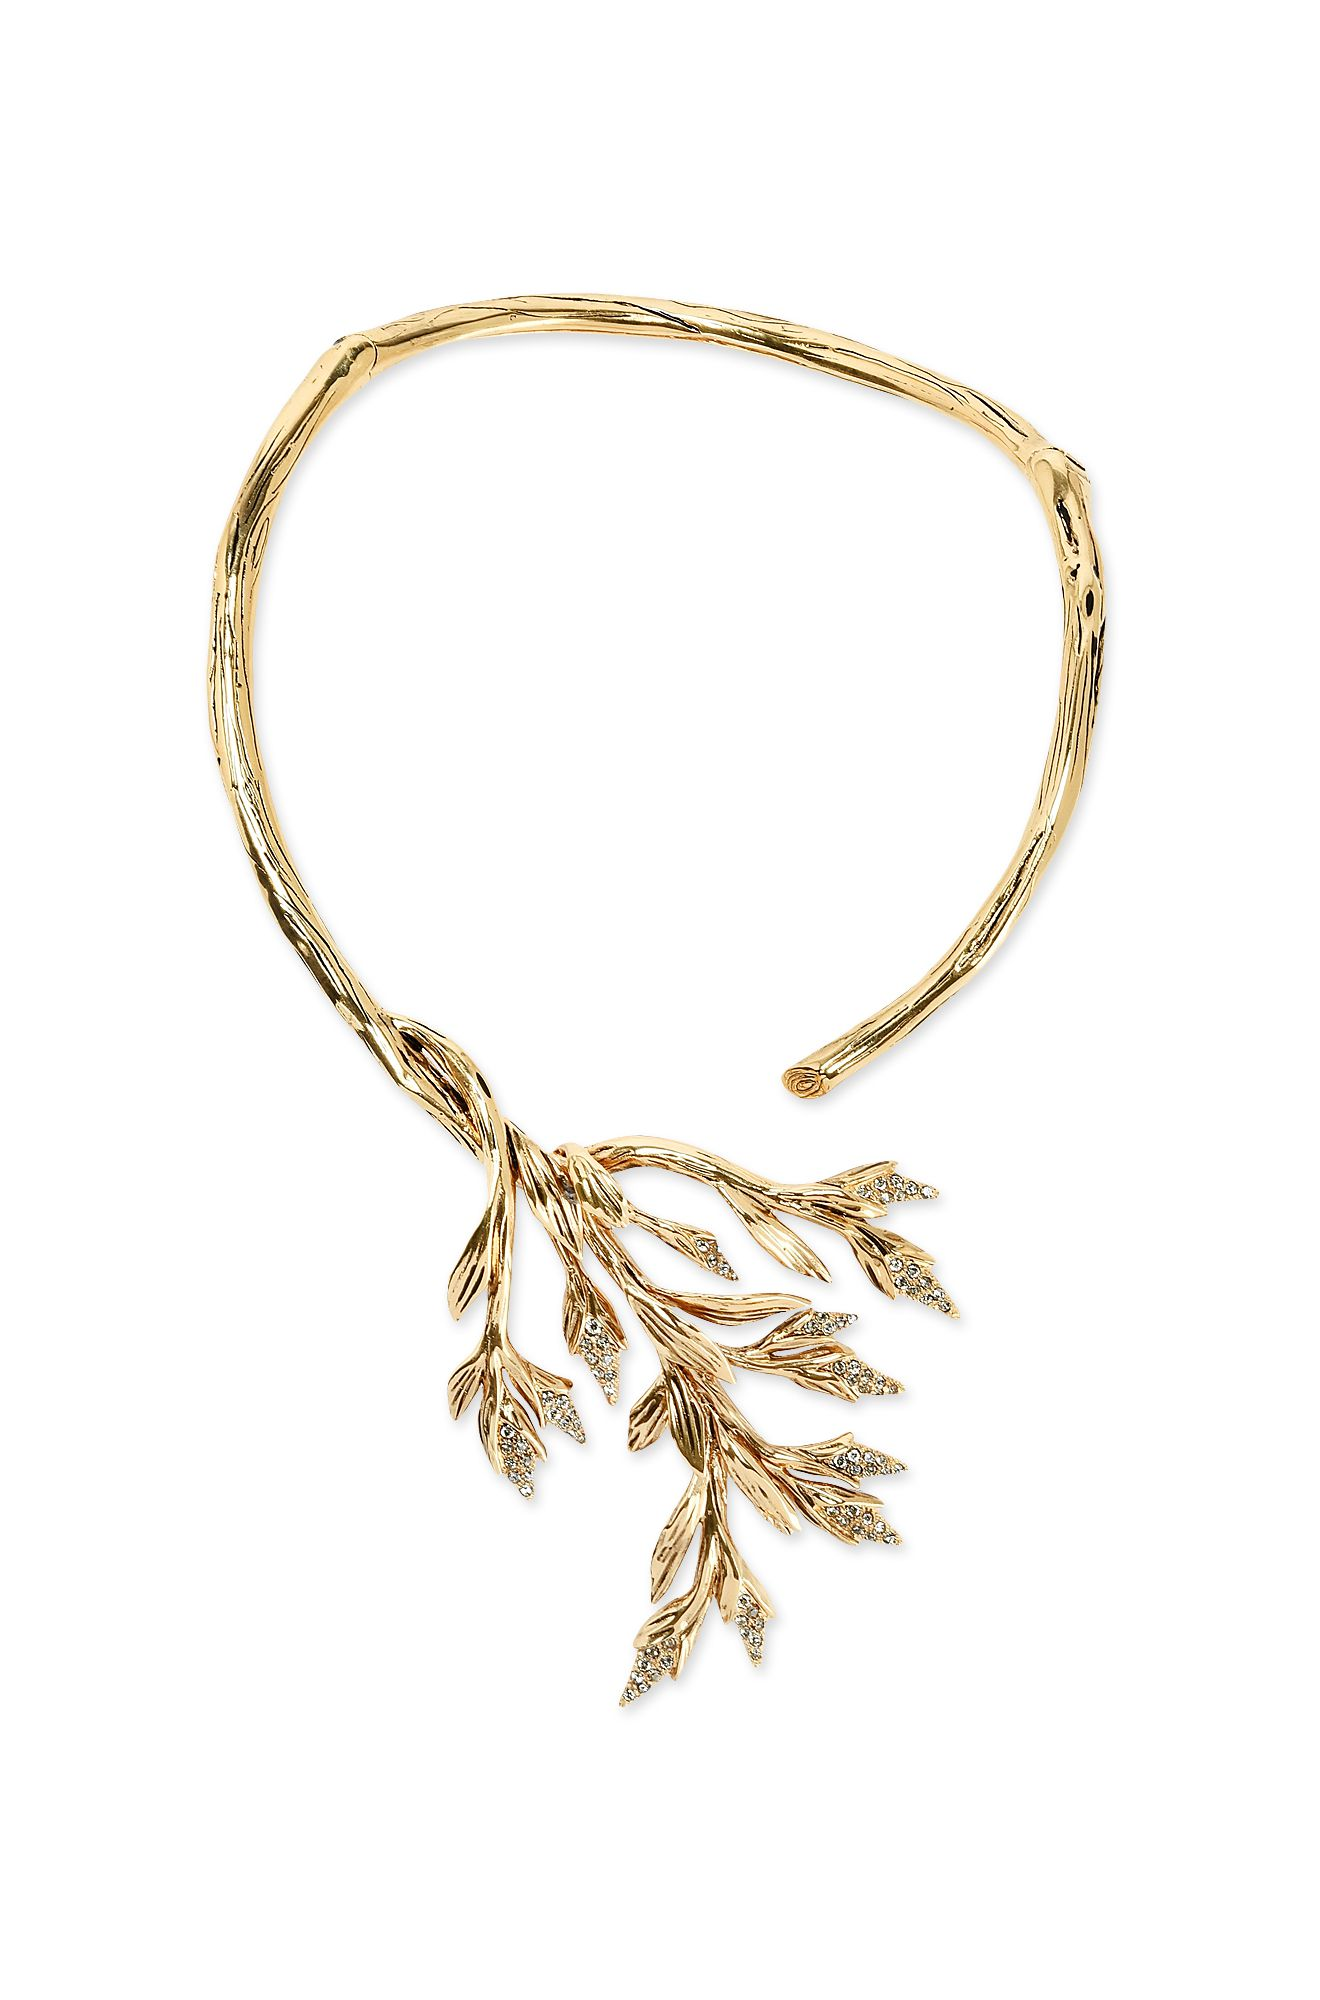 Foliage necklace